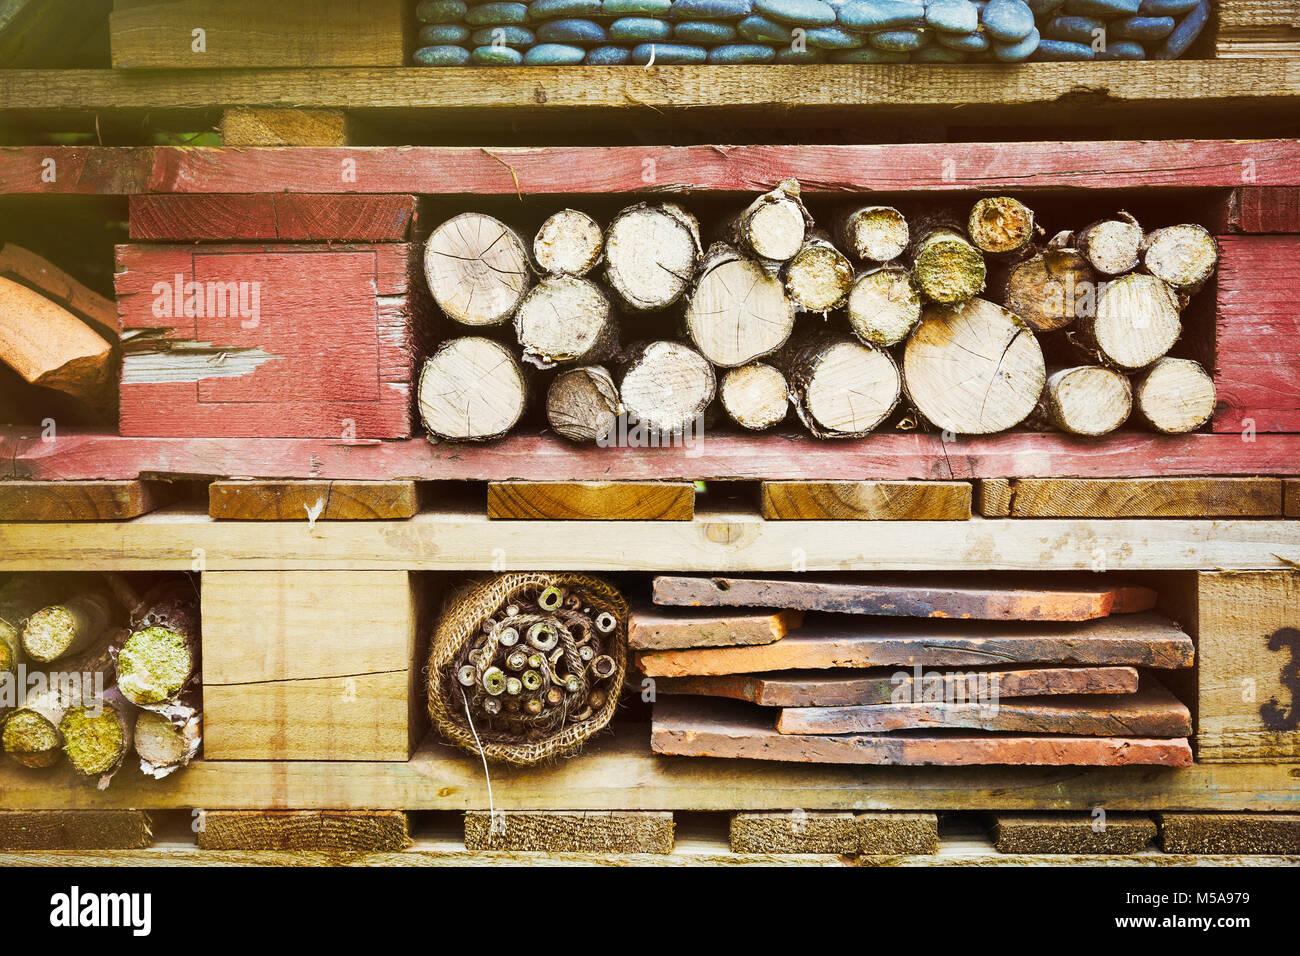 Close up of large bug house with several layers of different materials. - Stock Image